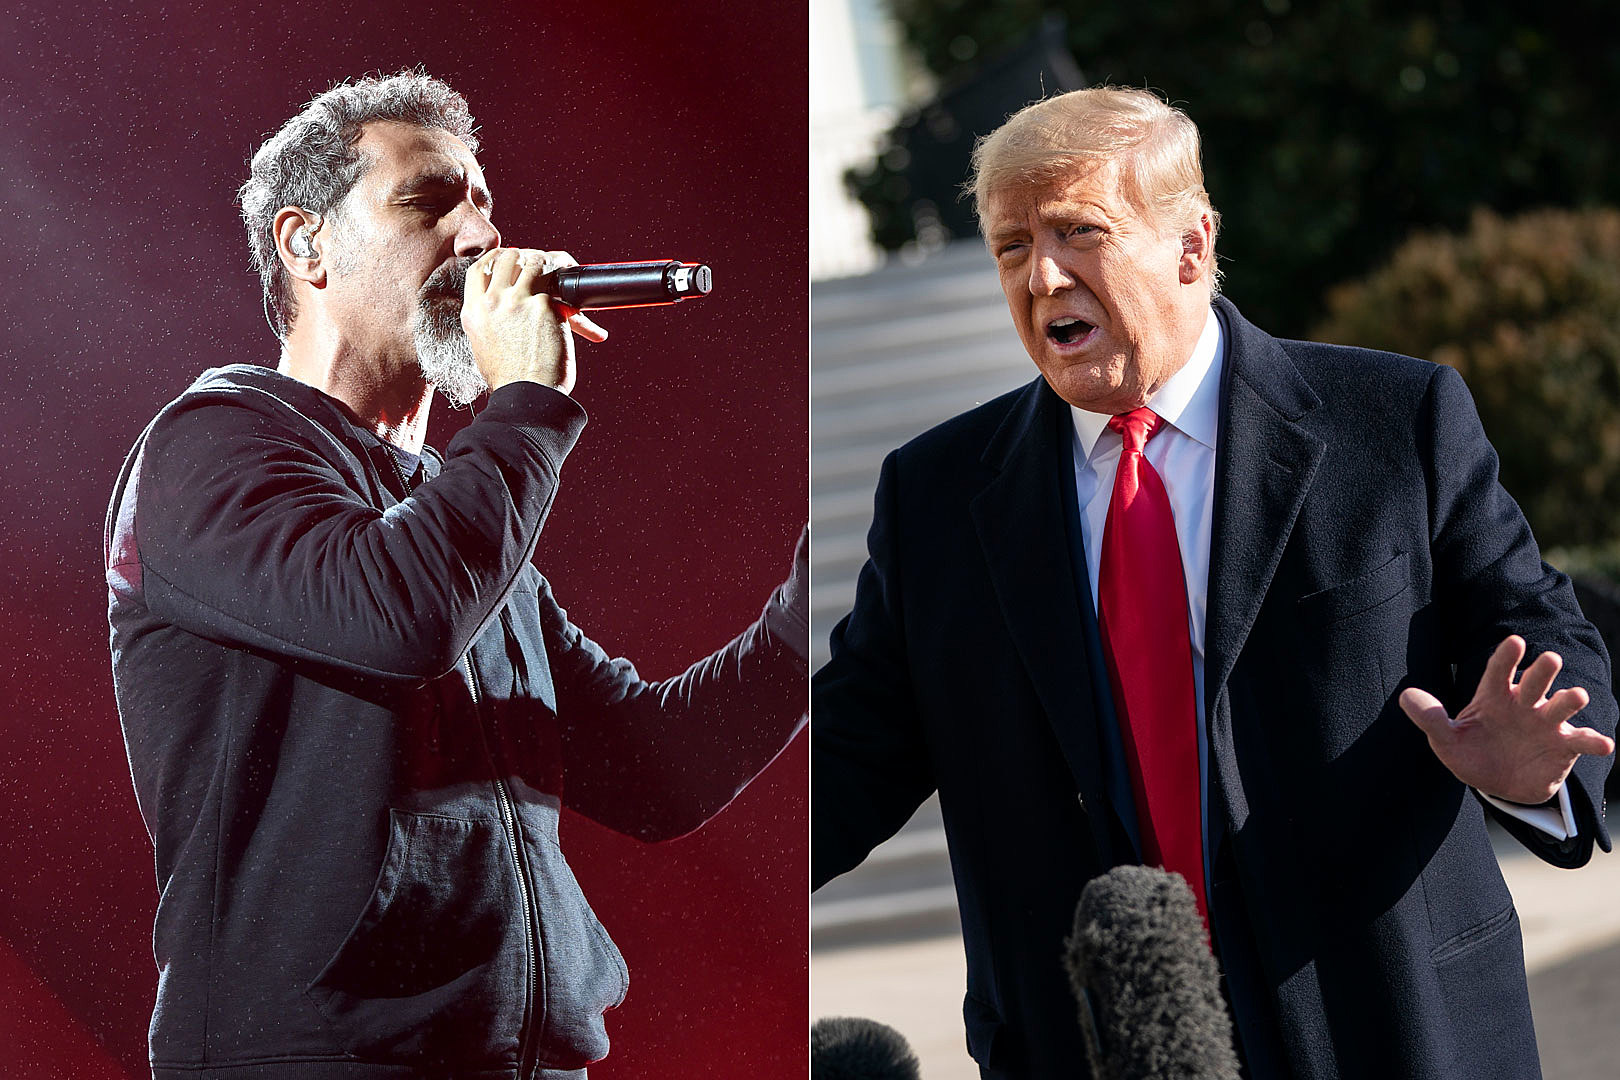 Tankian Rips Trump: 'Never Seen a President Suck So Much C**k'